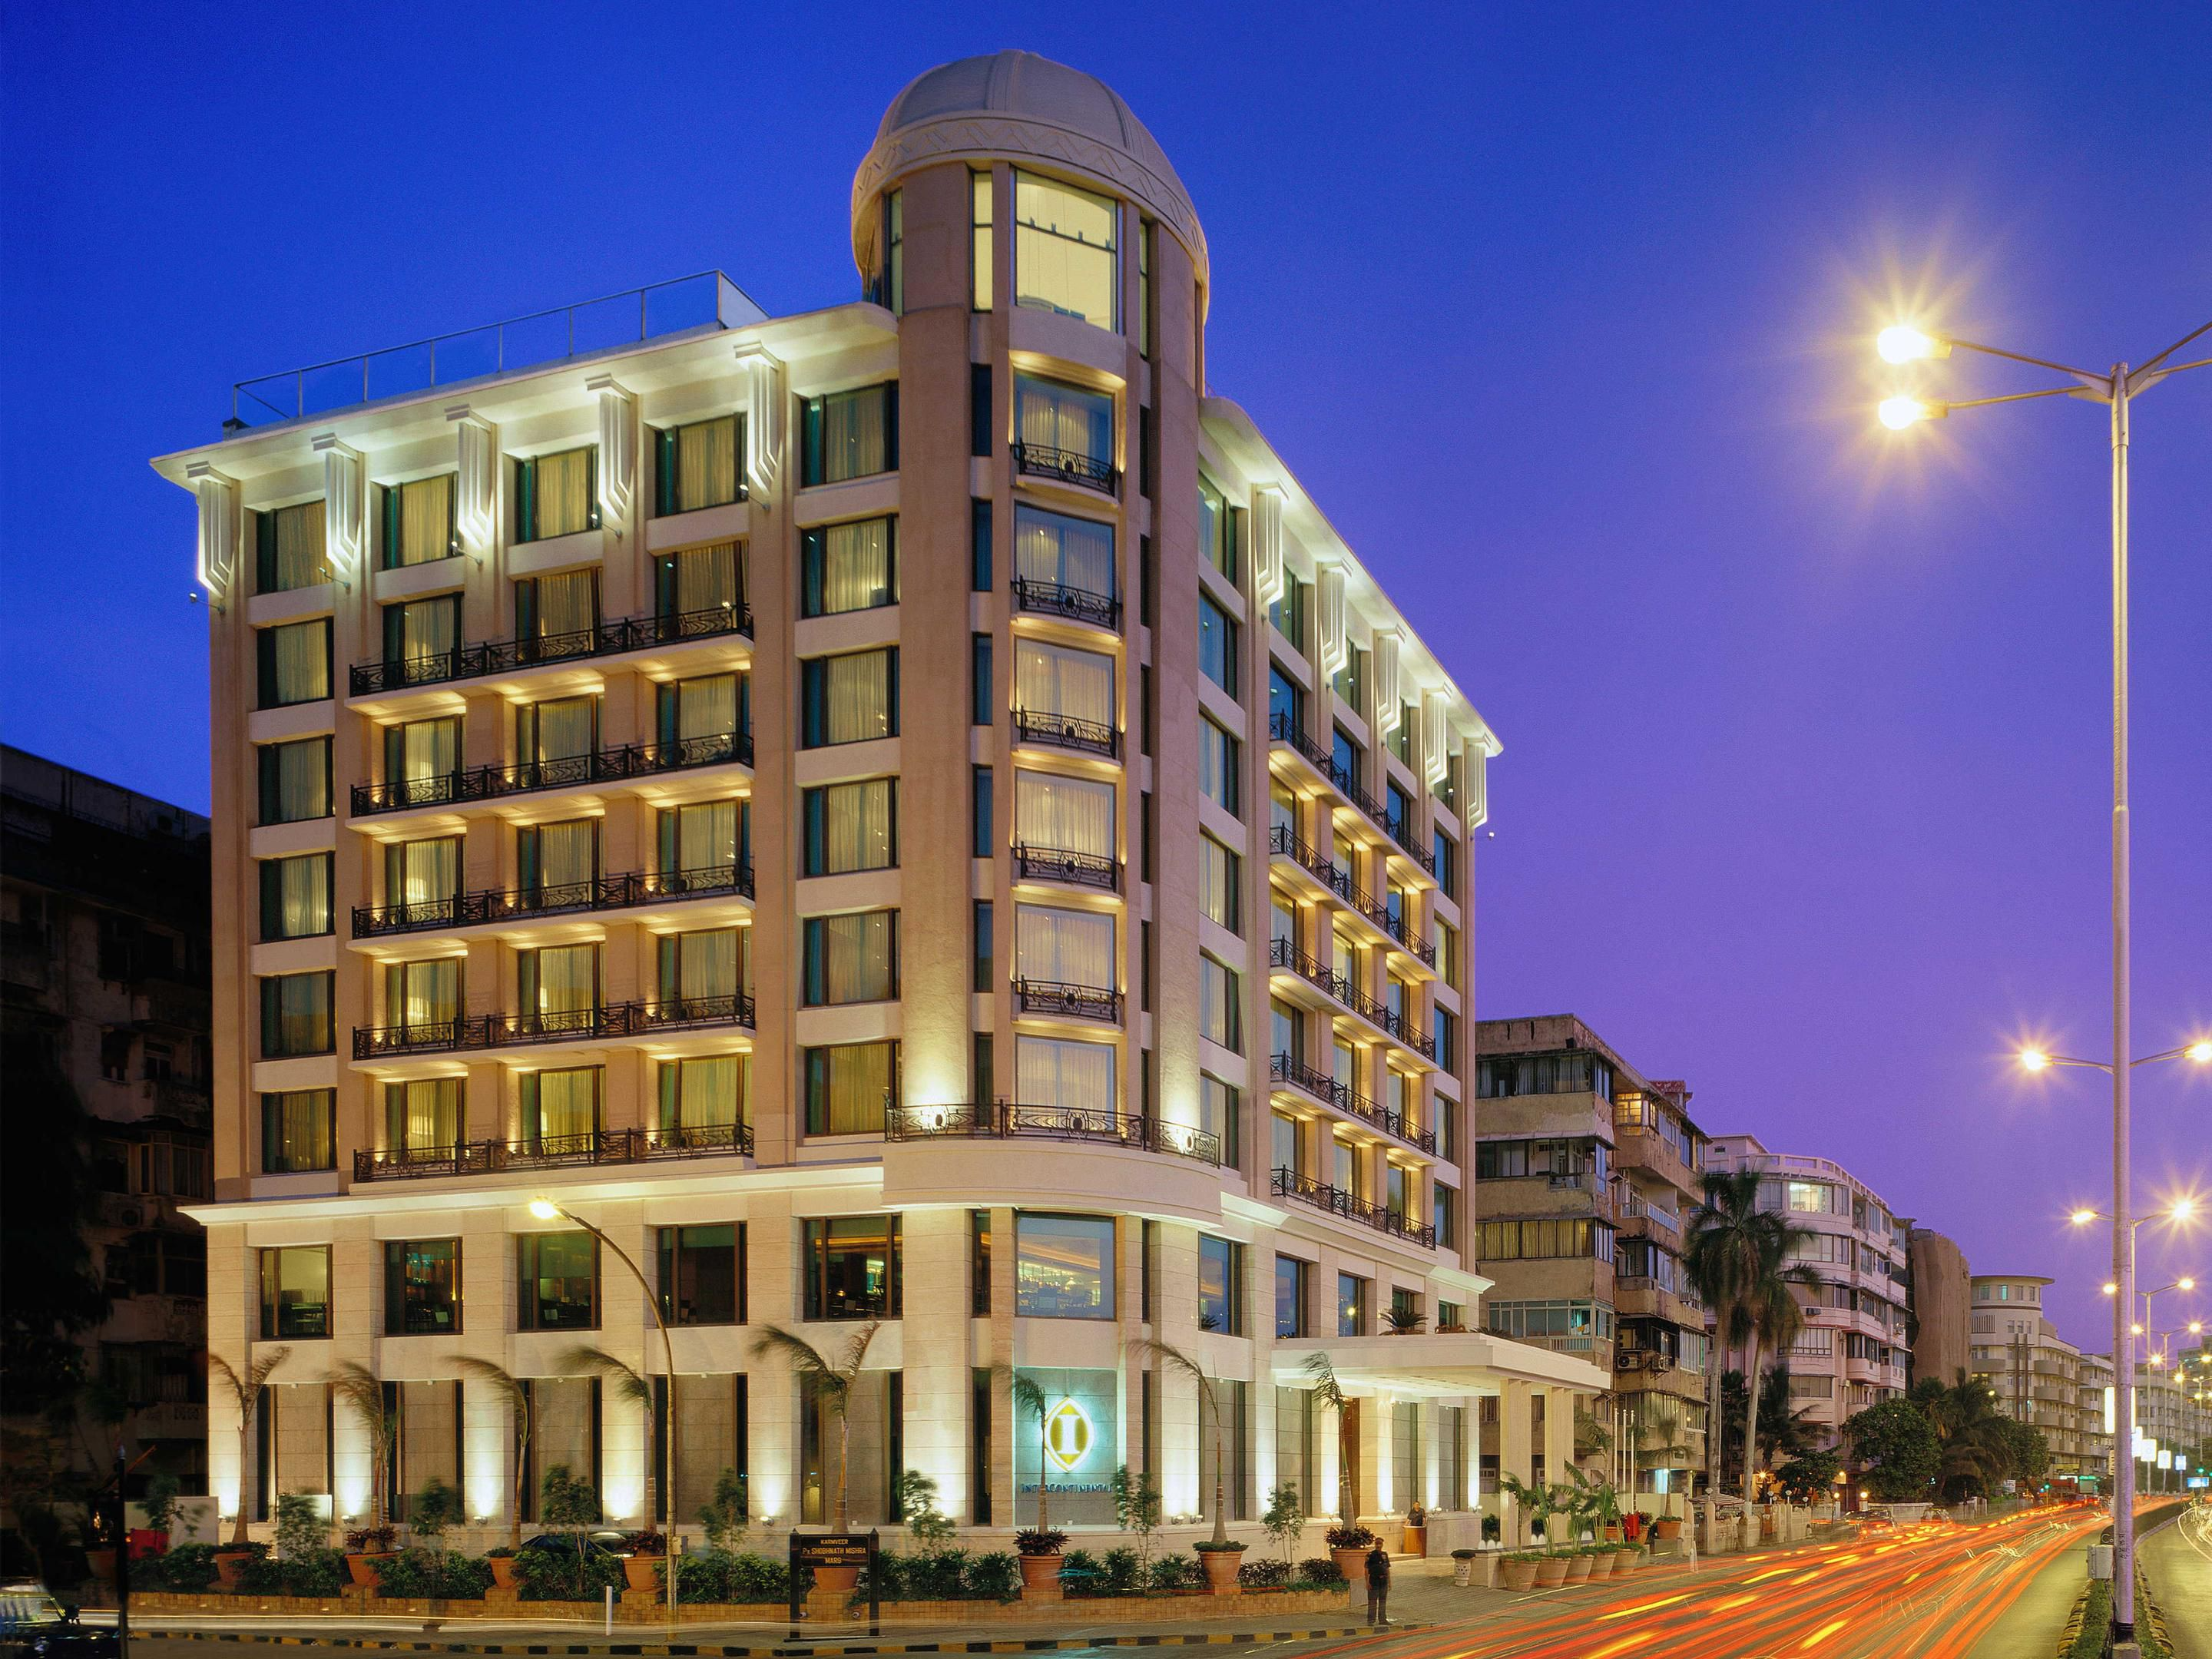 Hotels in Mumbai | Best places to stay in Mumbai, India by IHG